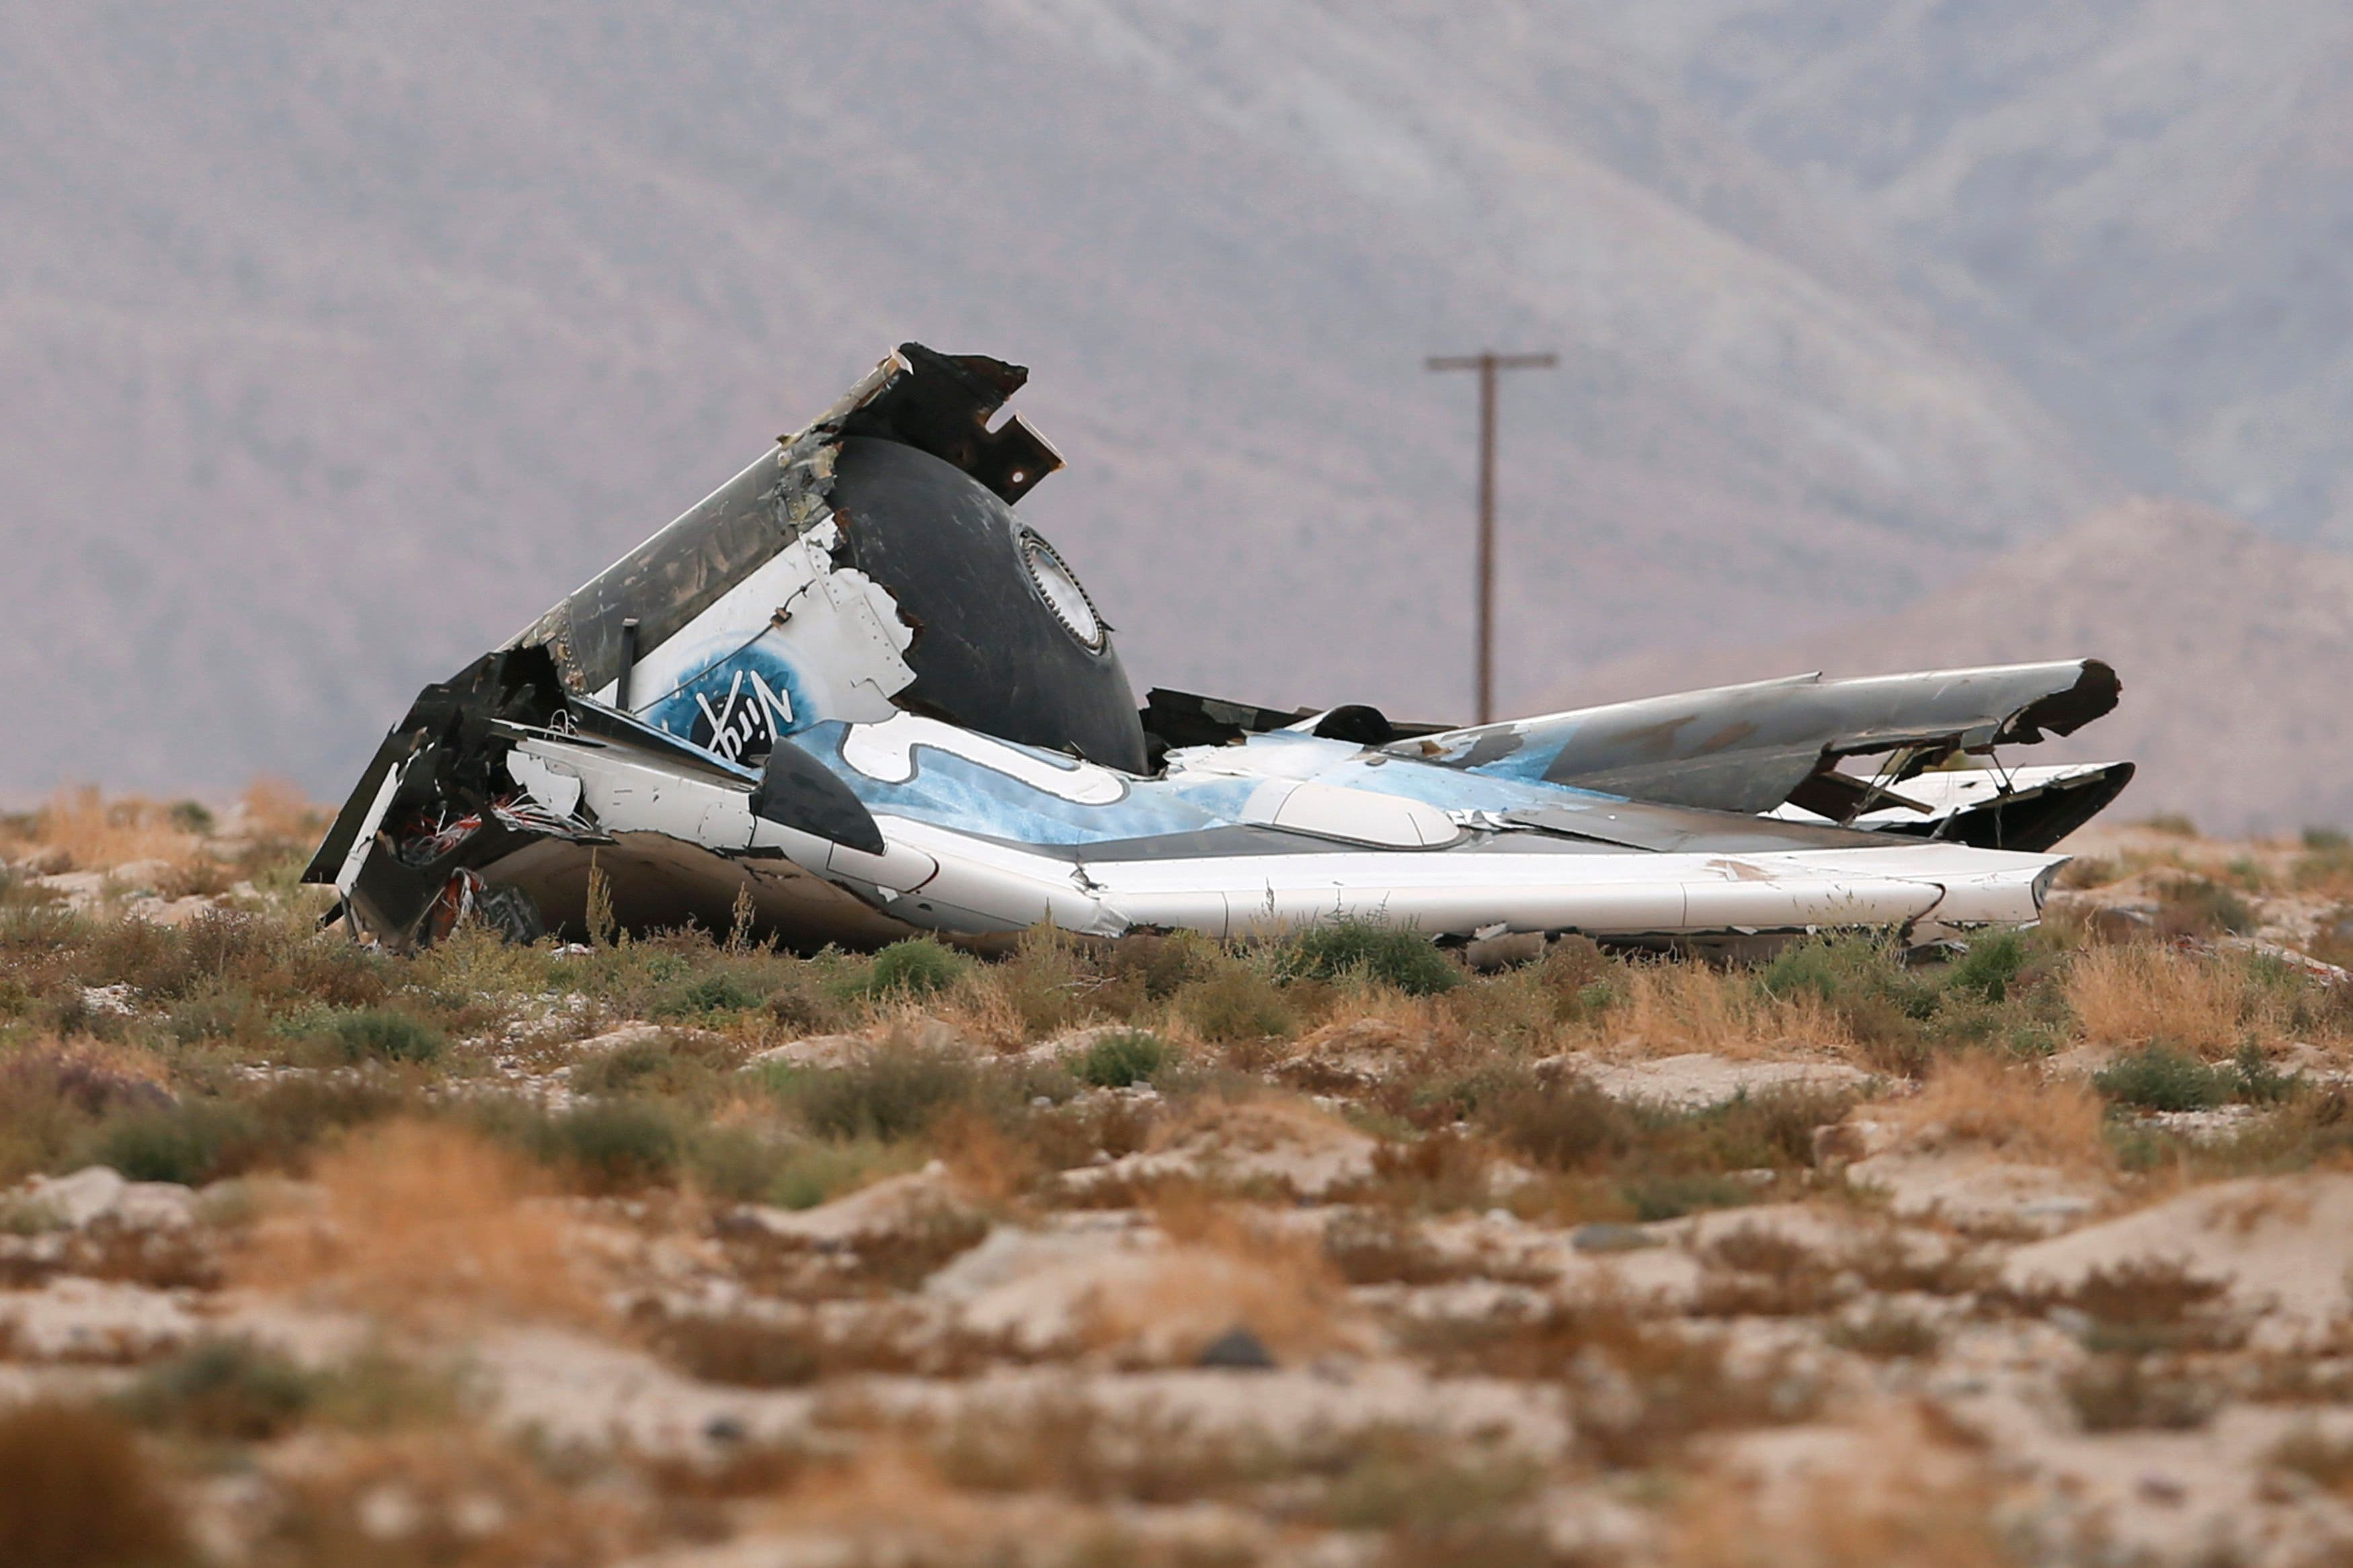 A piece of debris is seen near the scene of the crash of Virgin Galactic's SpaceShipTwo near Cantil, California October 31, 2014. (Reuters)